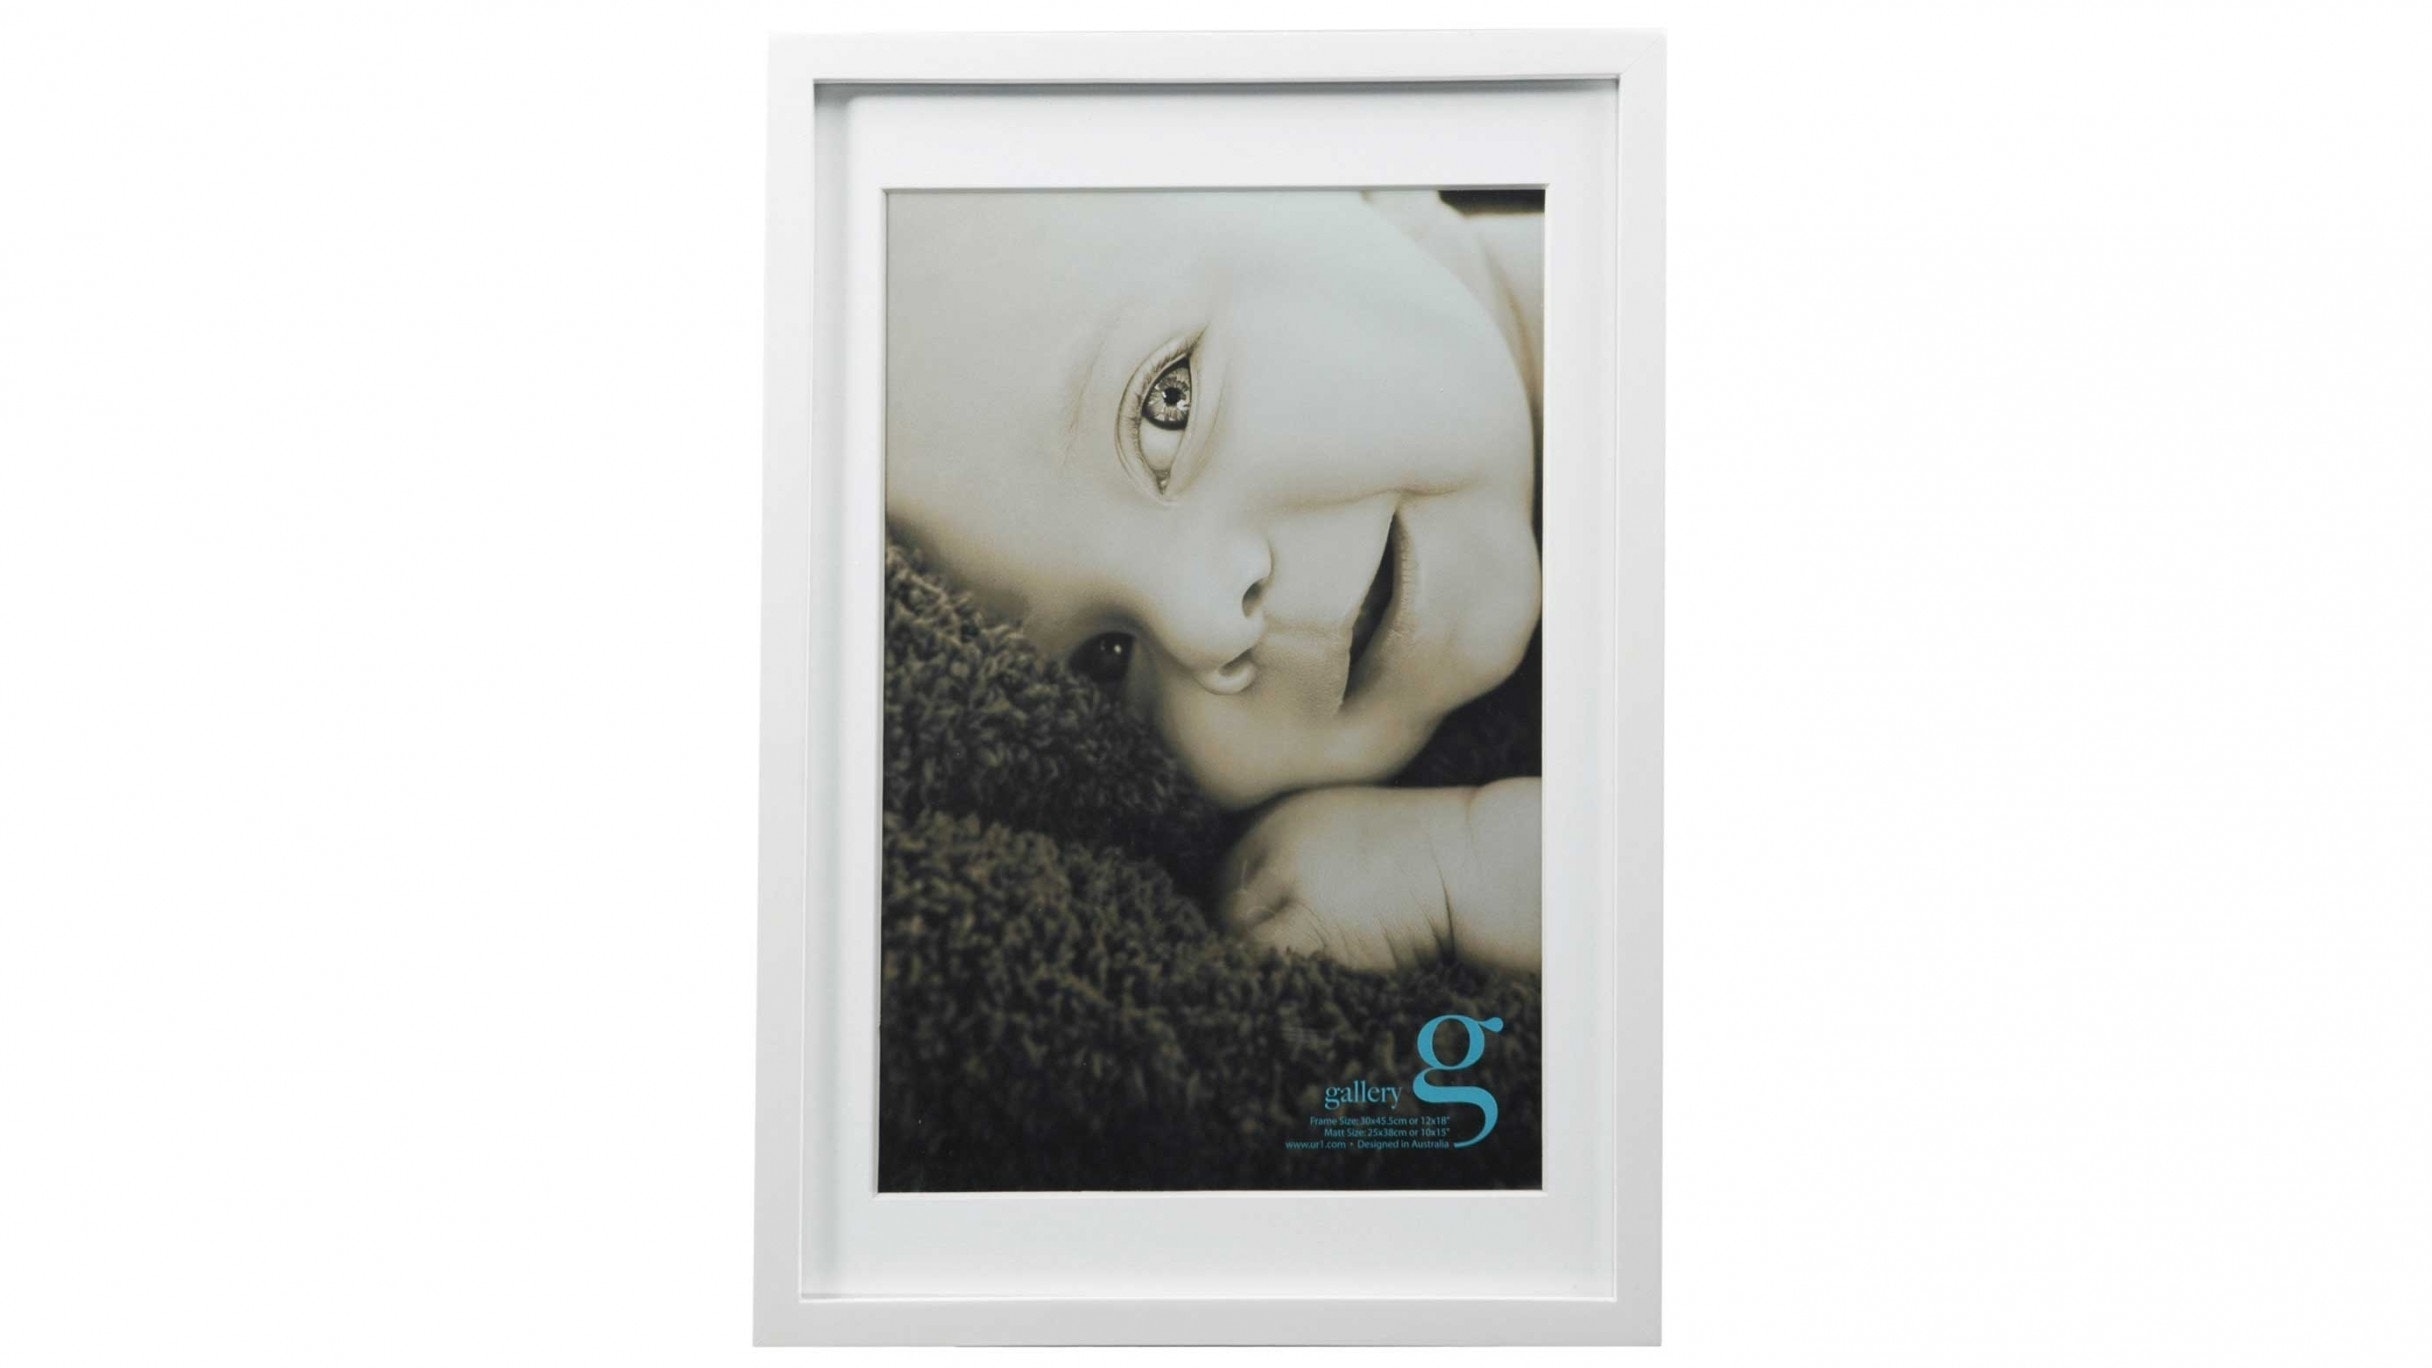 """UR1 Gallery 12""""x18"""" Photo Frame with 10""""x15"""" Opening - White"""